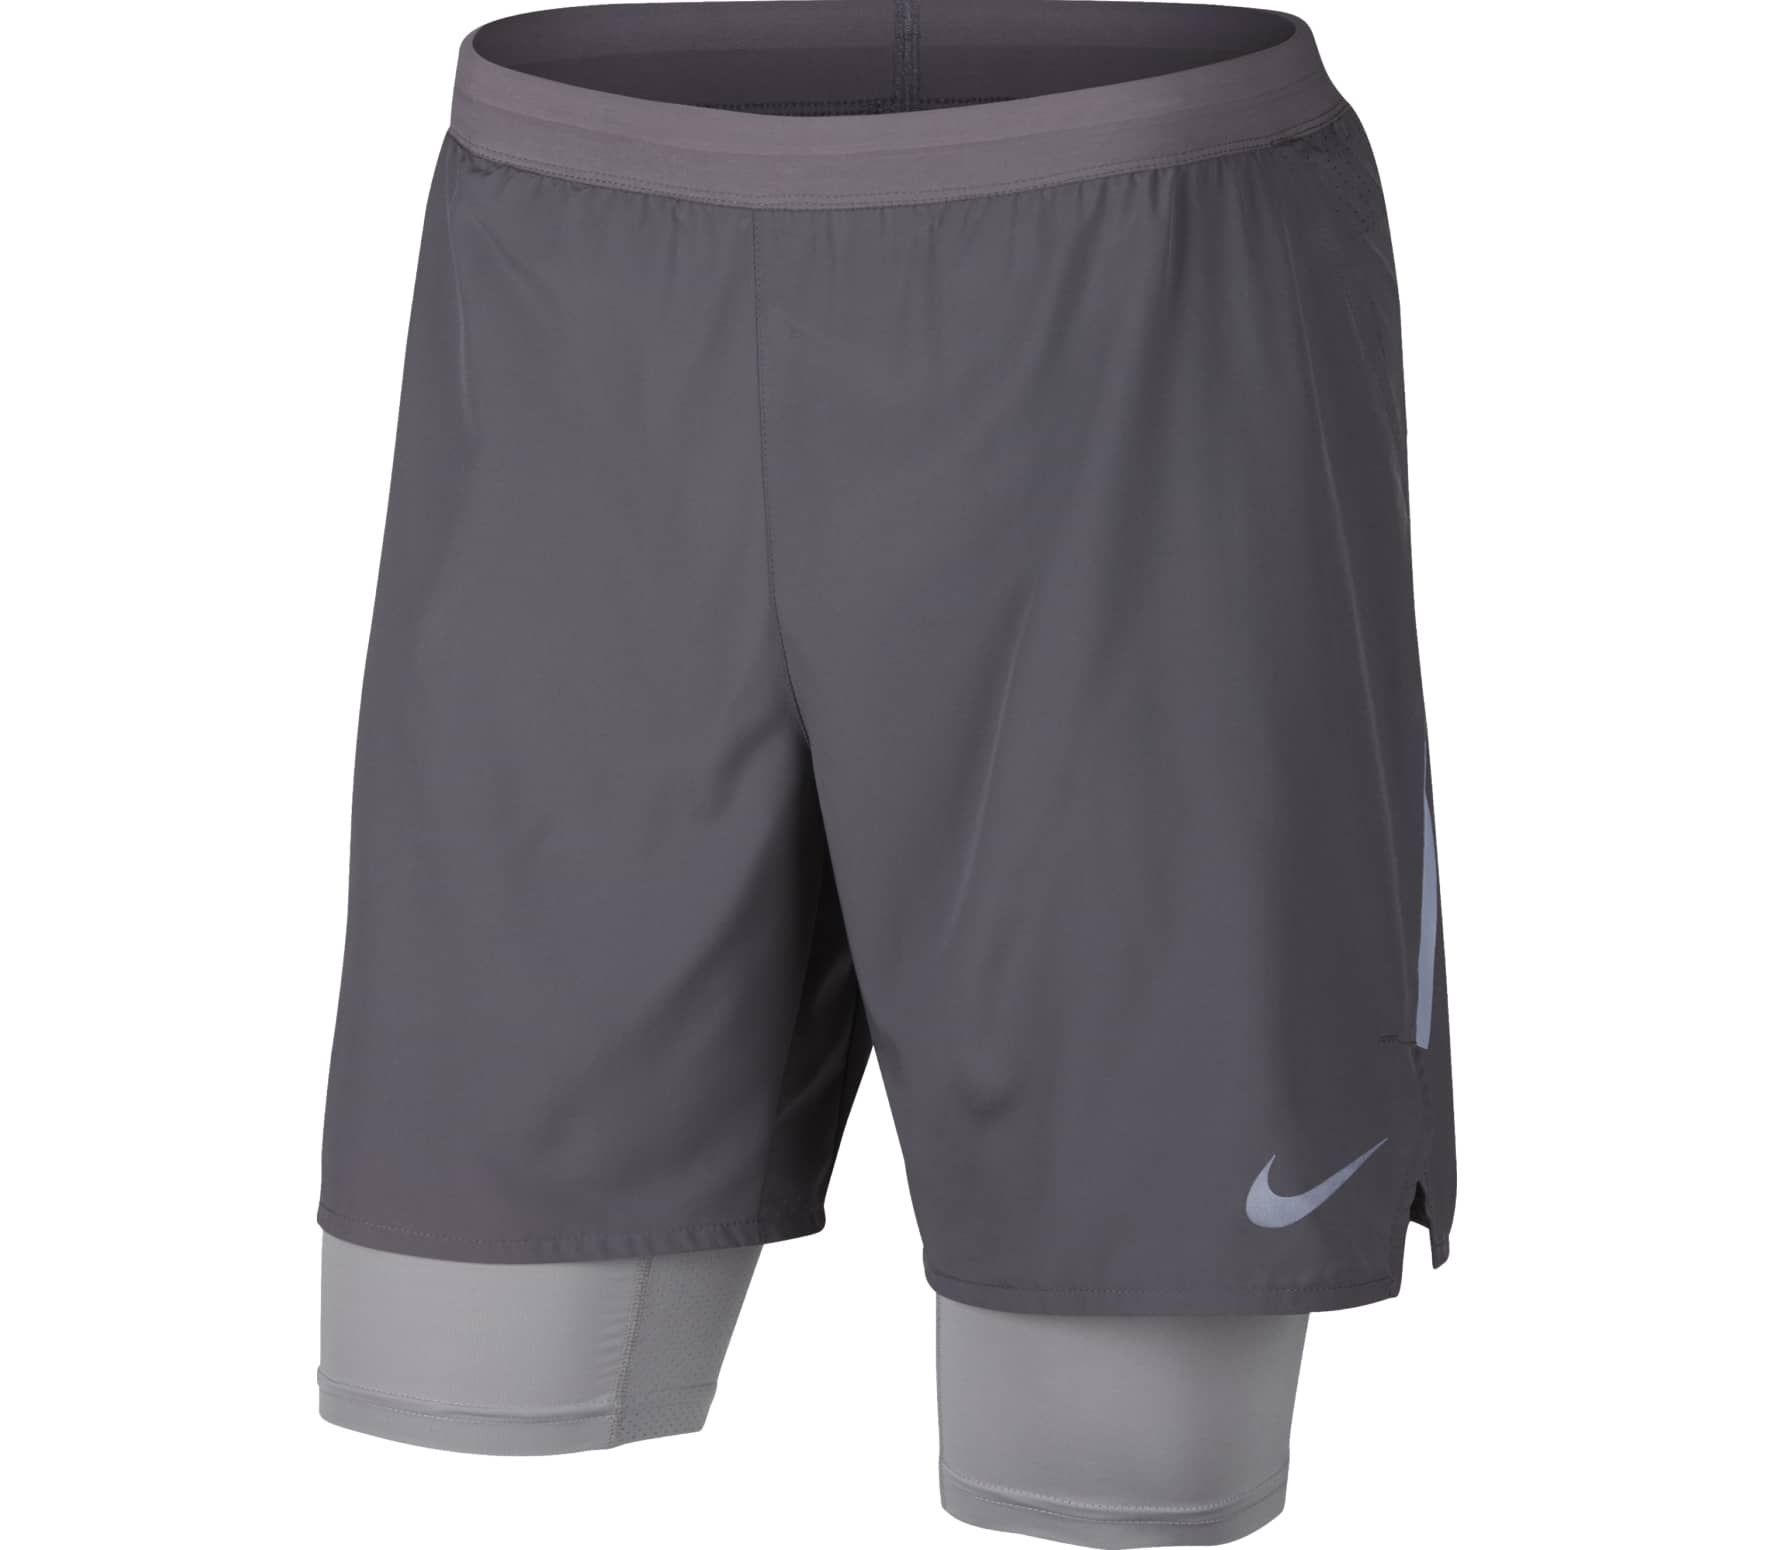 ad52866a0697 Nike -  Distance 2-in-1  7 inch men s running shorts (grey) - buy it ...